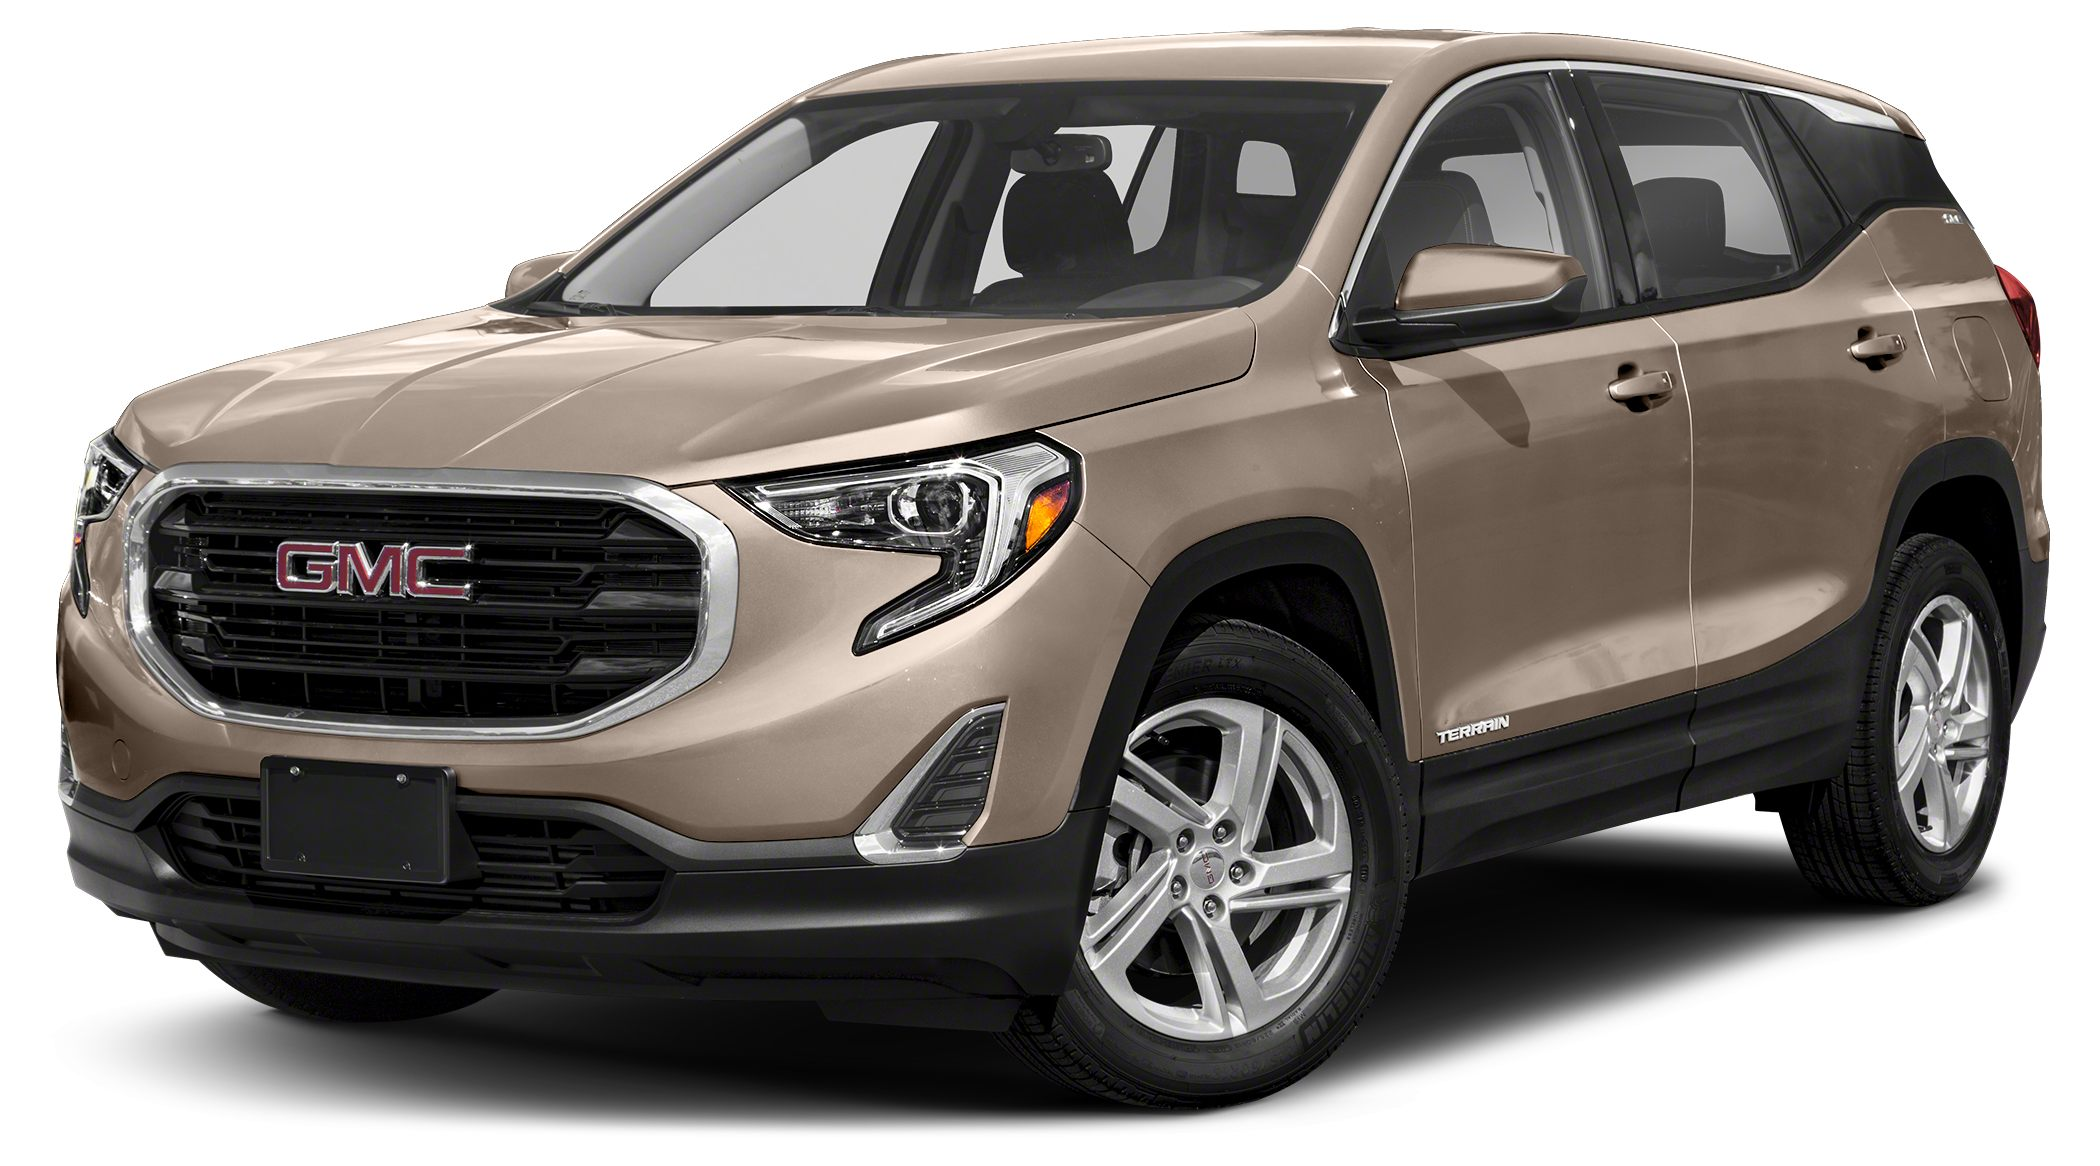 2018 GMC Terrain SLE Youll love getting behind the wheel of this 2018 GMC Terrain SLE which is c